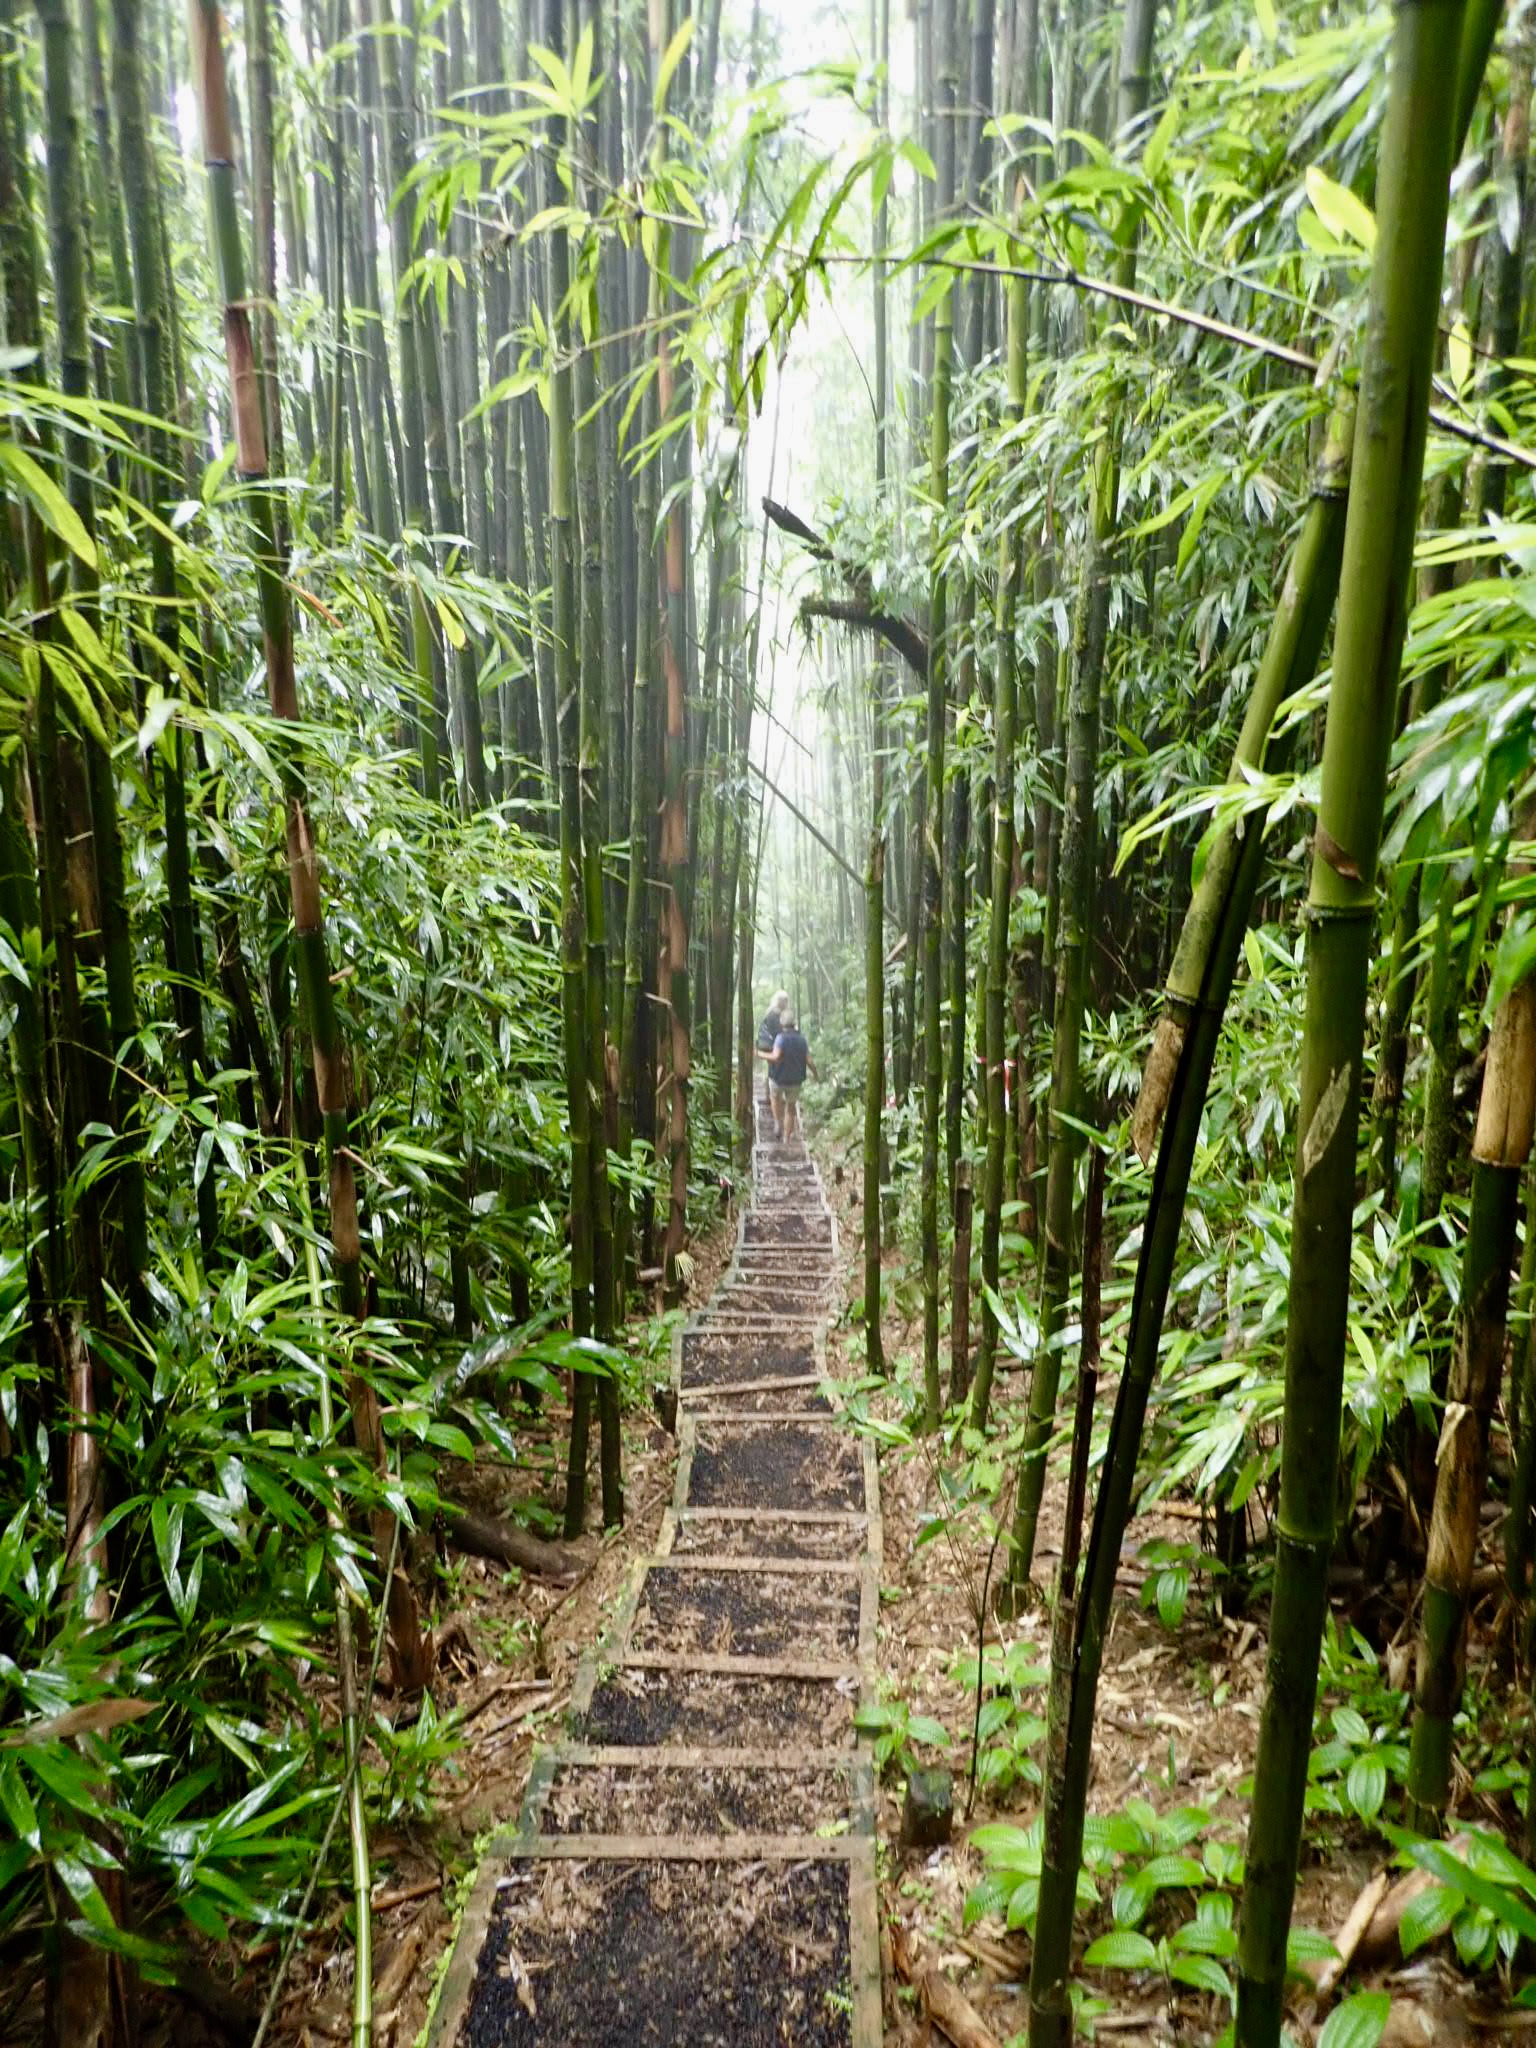 The Bamboo forest in the mist...